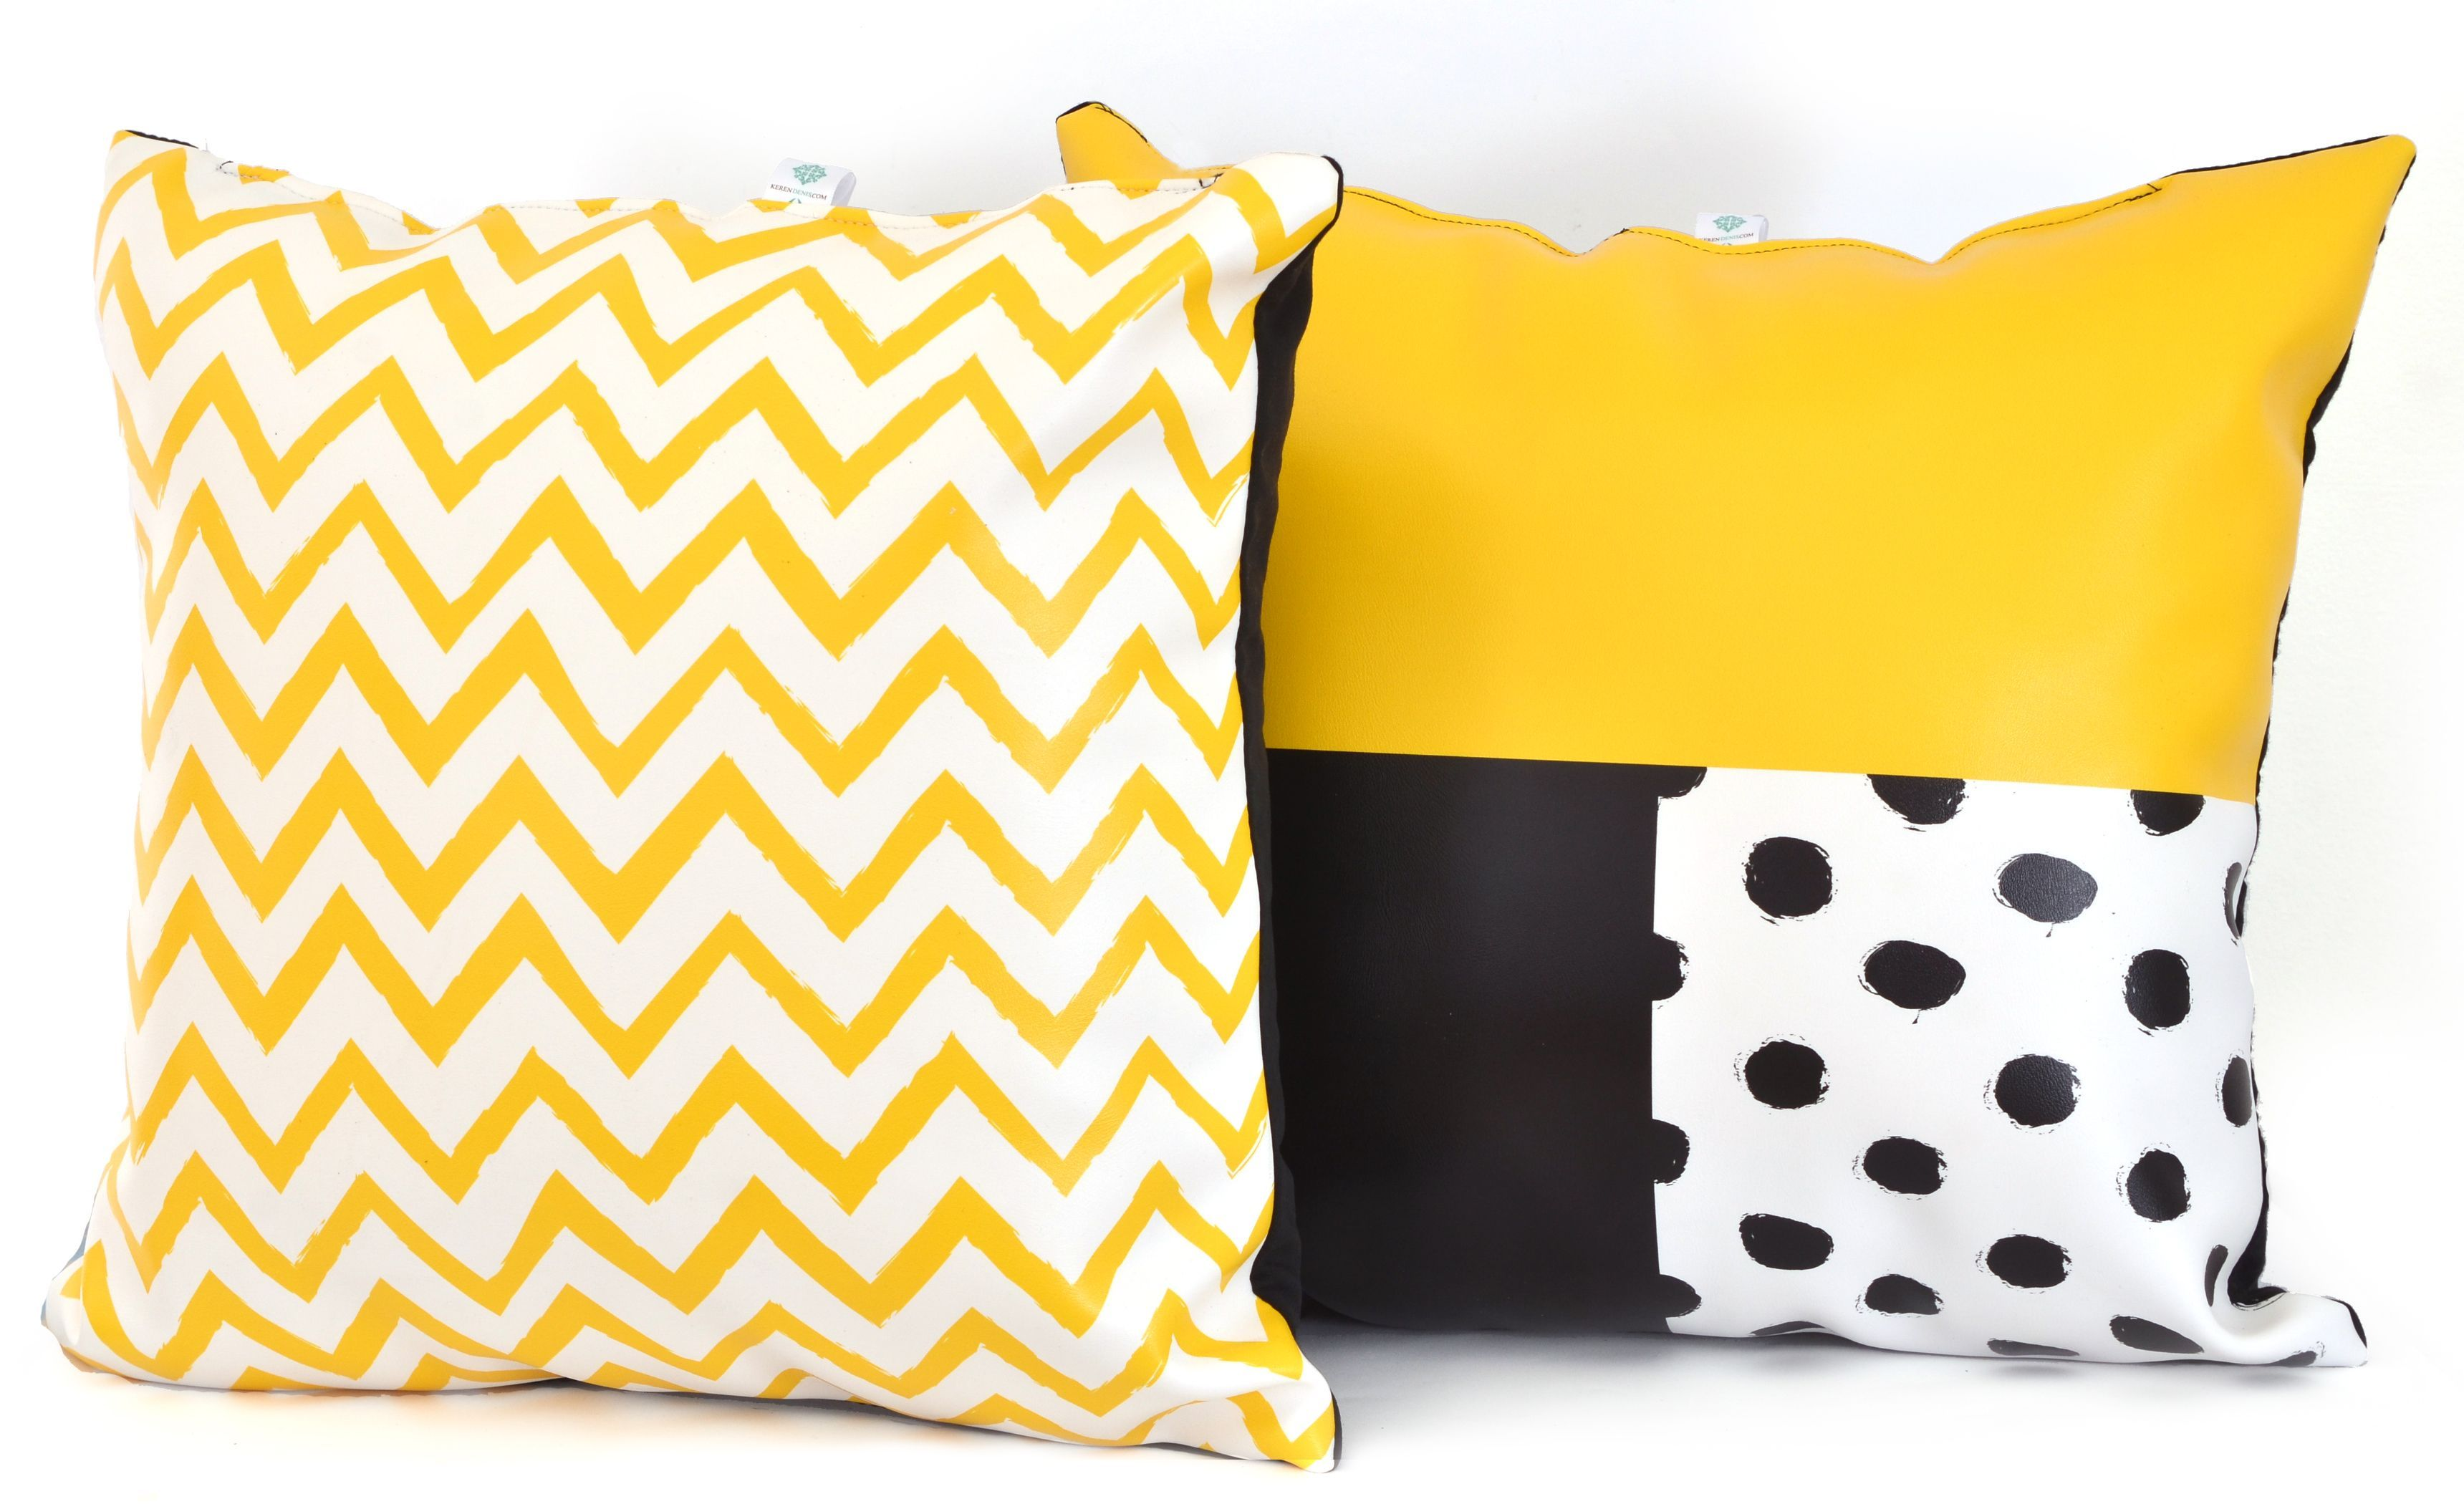 Miraculous useful tips decorative pillows living room color combos